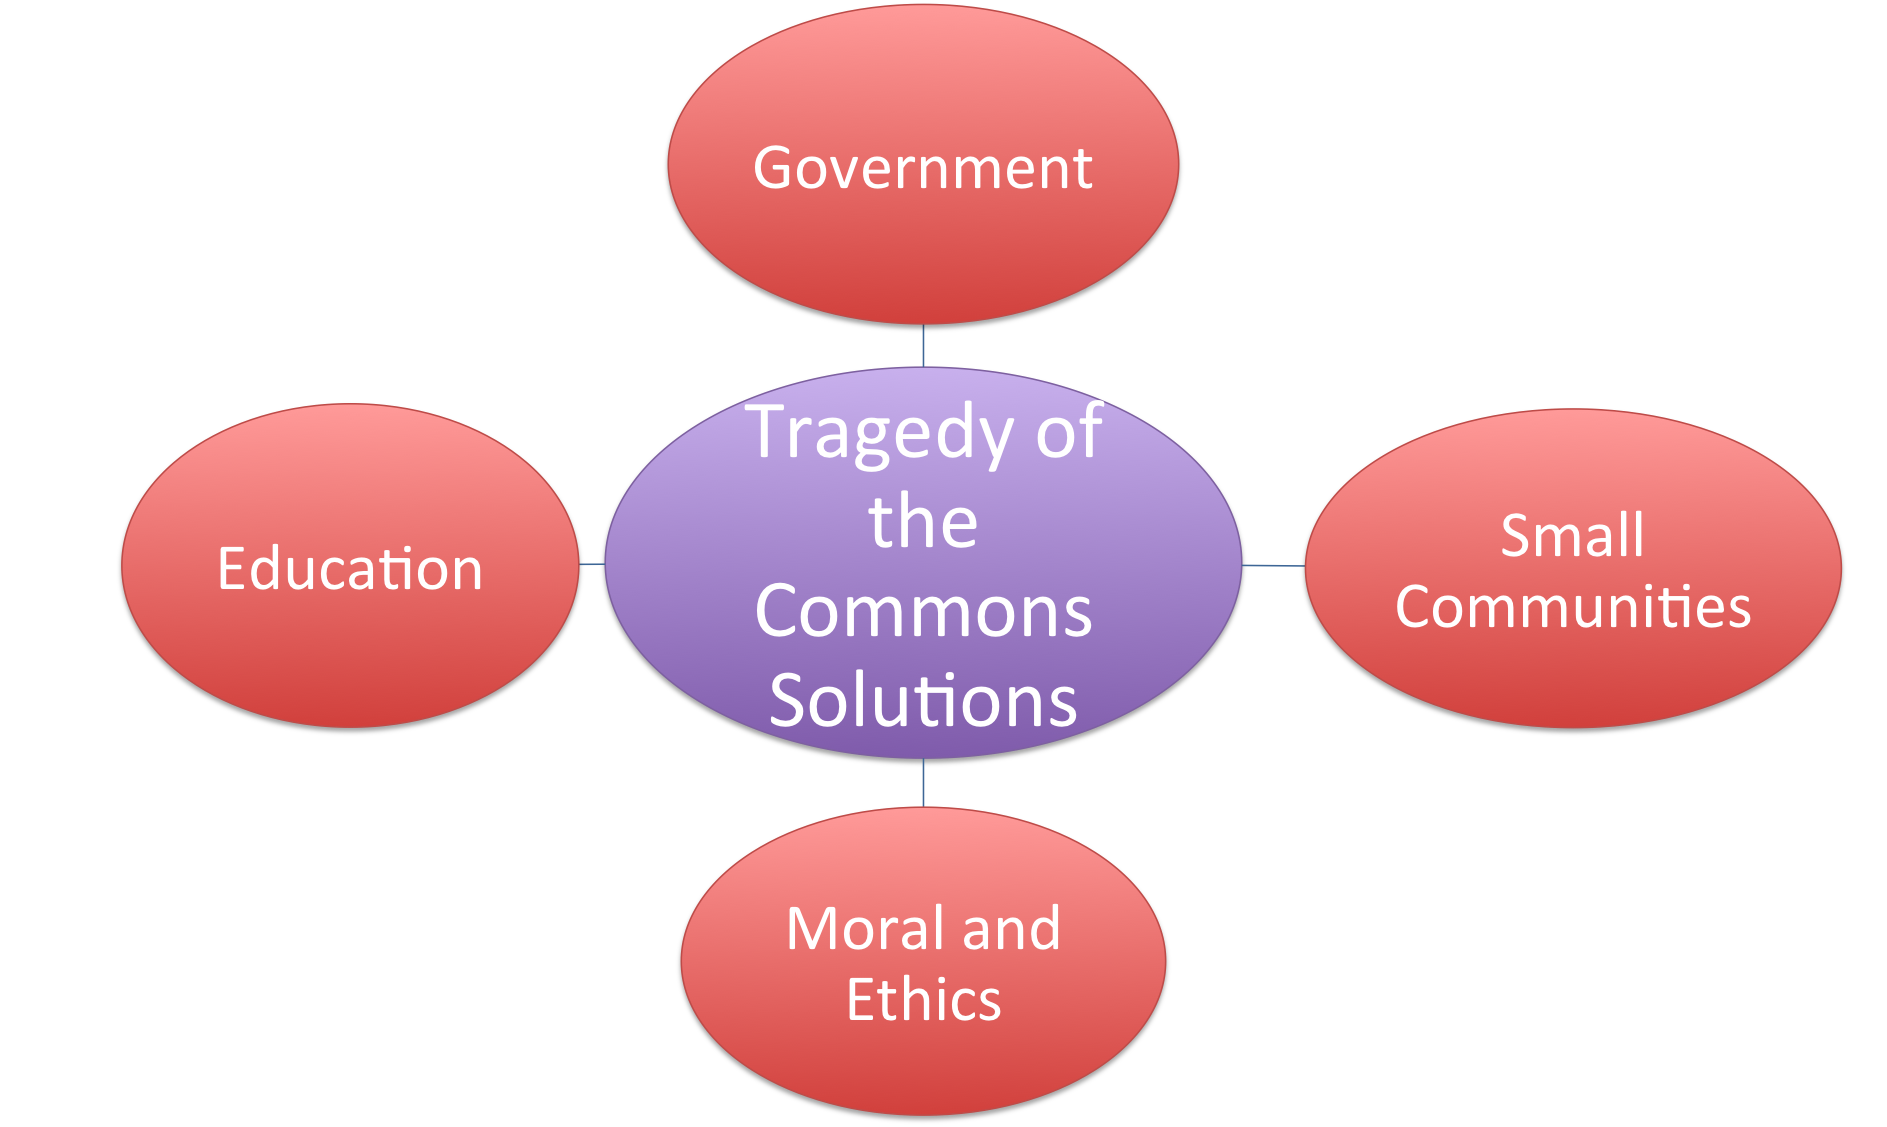 tragedy of commons Definition of tragedy of the commons: archetypical social phenomenon where an  attempt to exploit others (or 'the system') in one way or the other eventually.